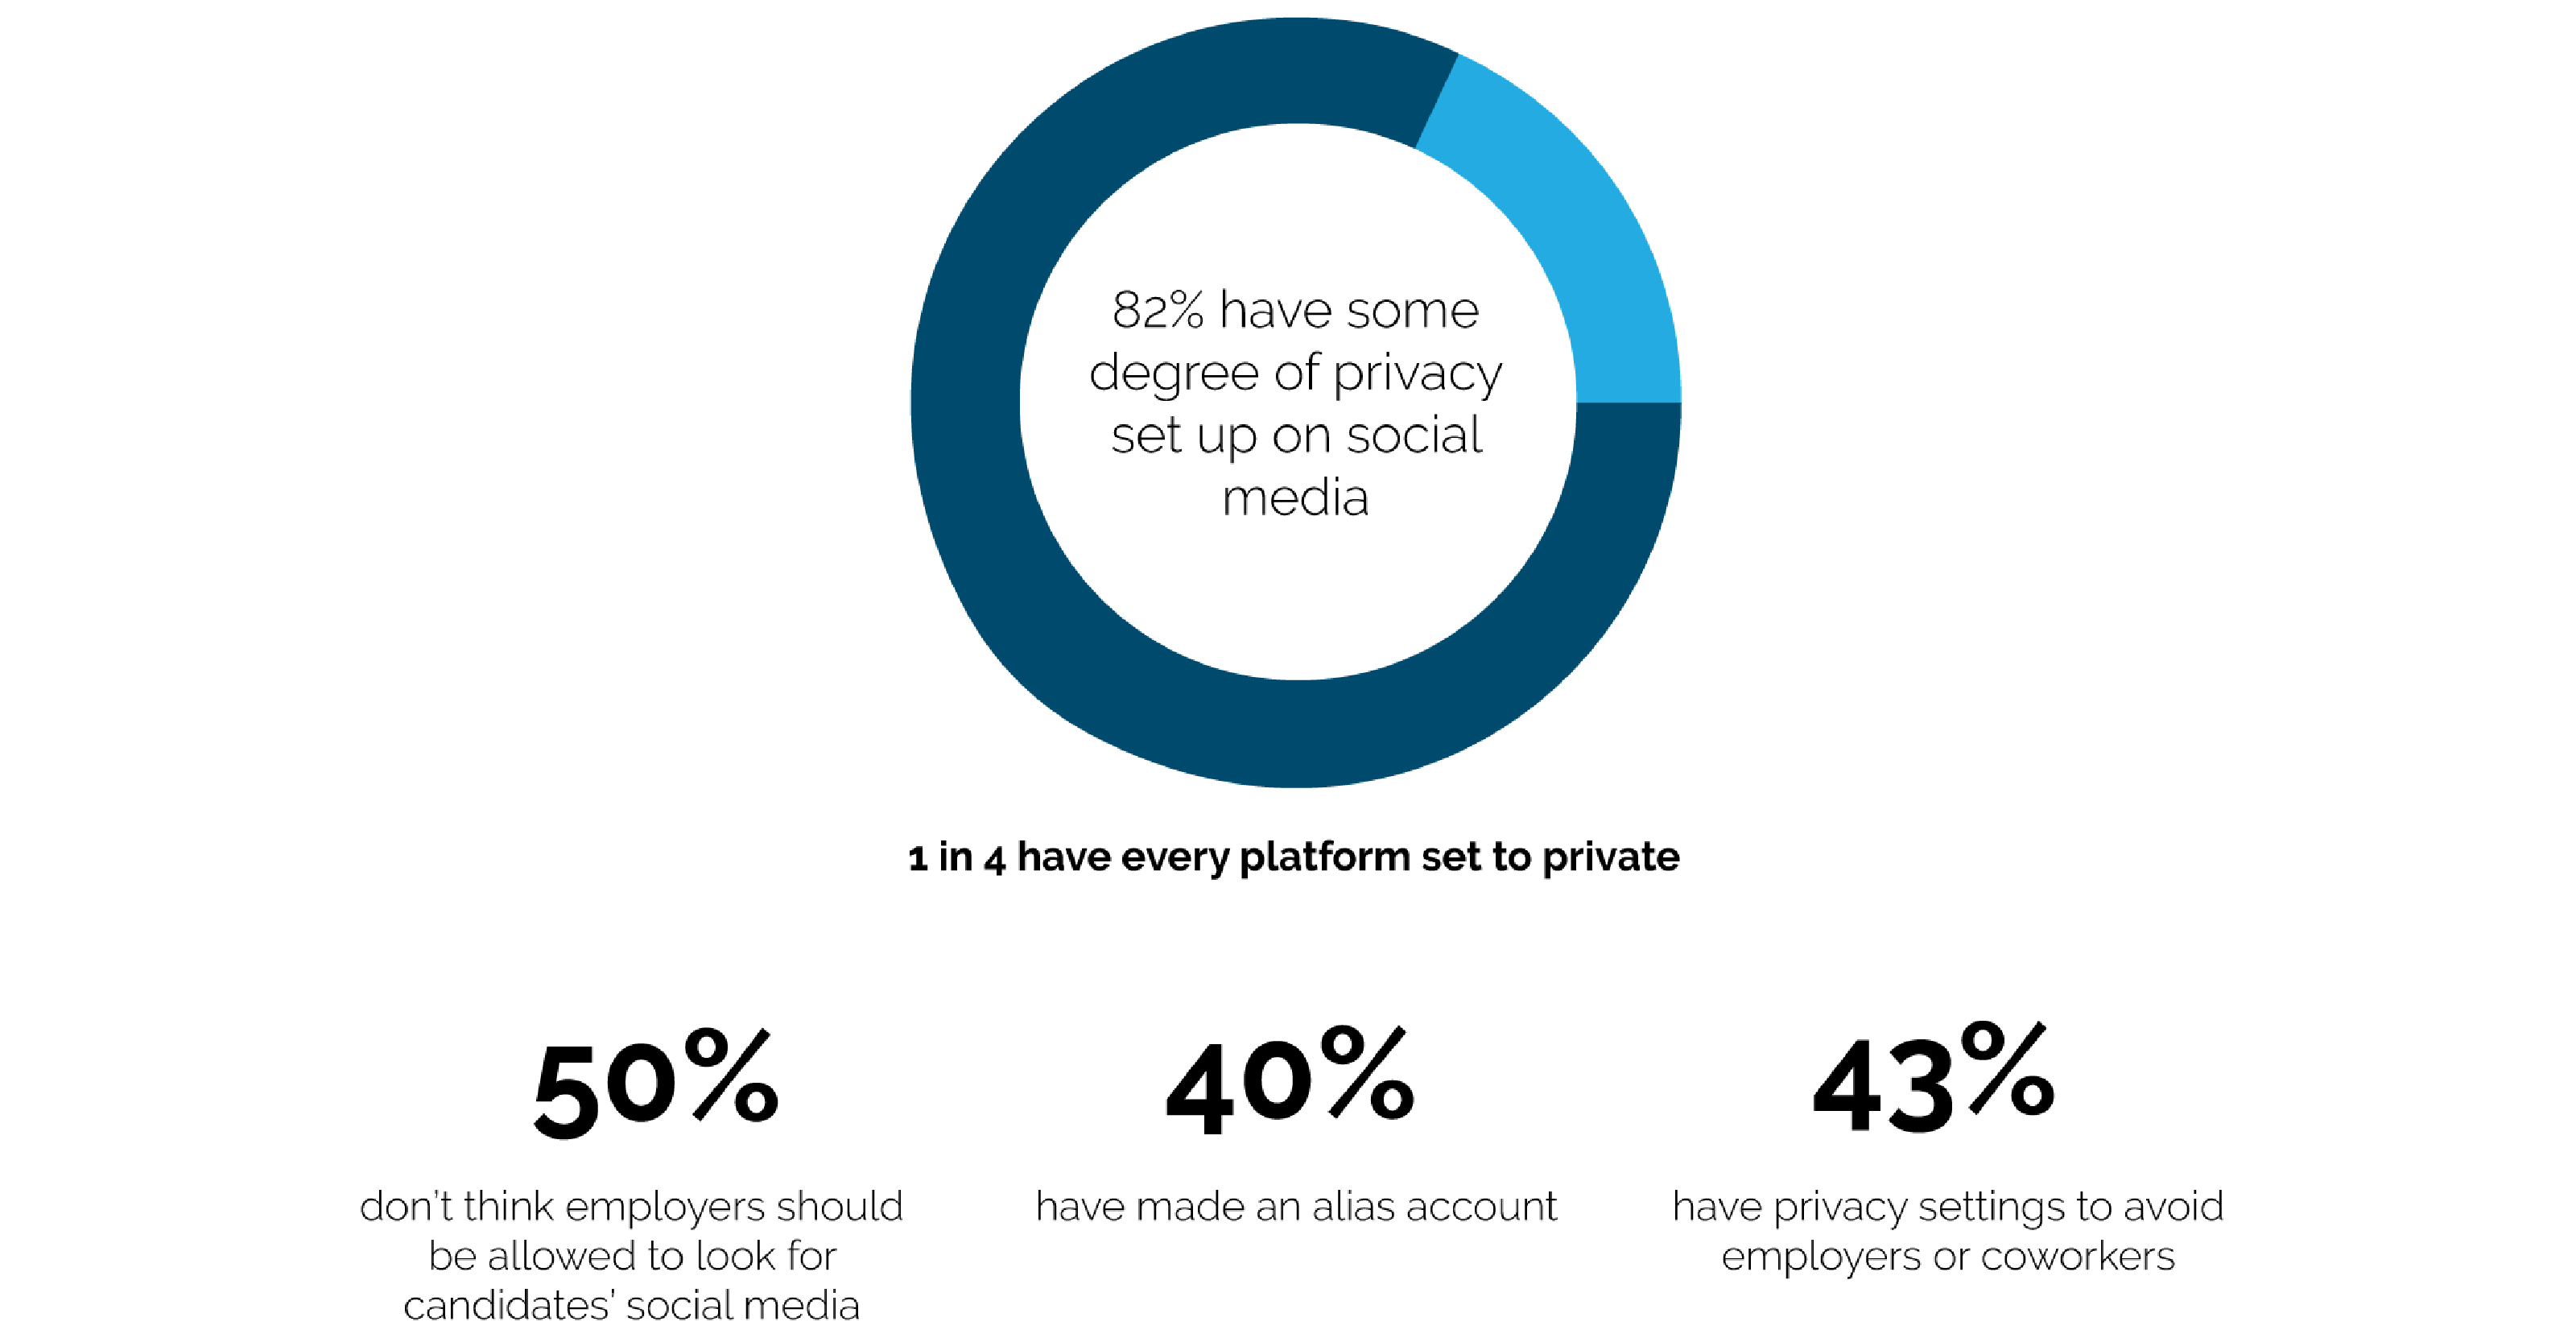 infographic: 82% of job seekers have some degree of privacy set up on social media